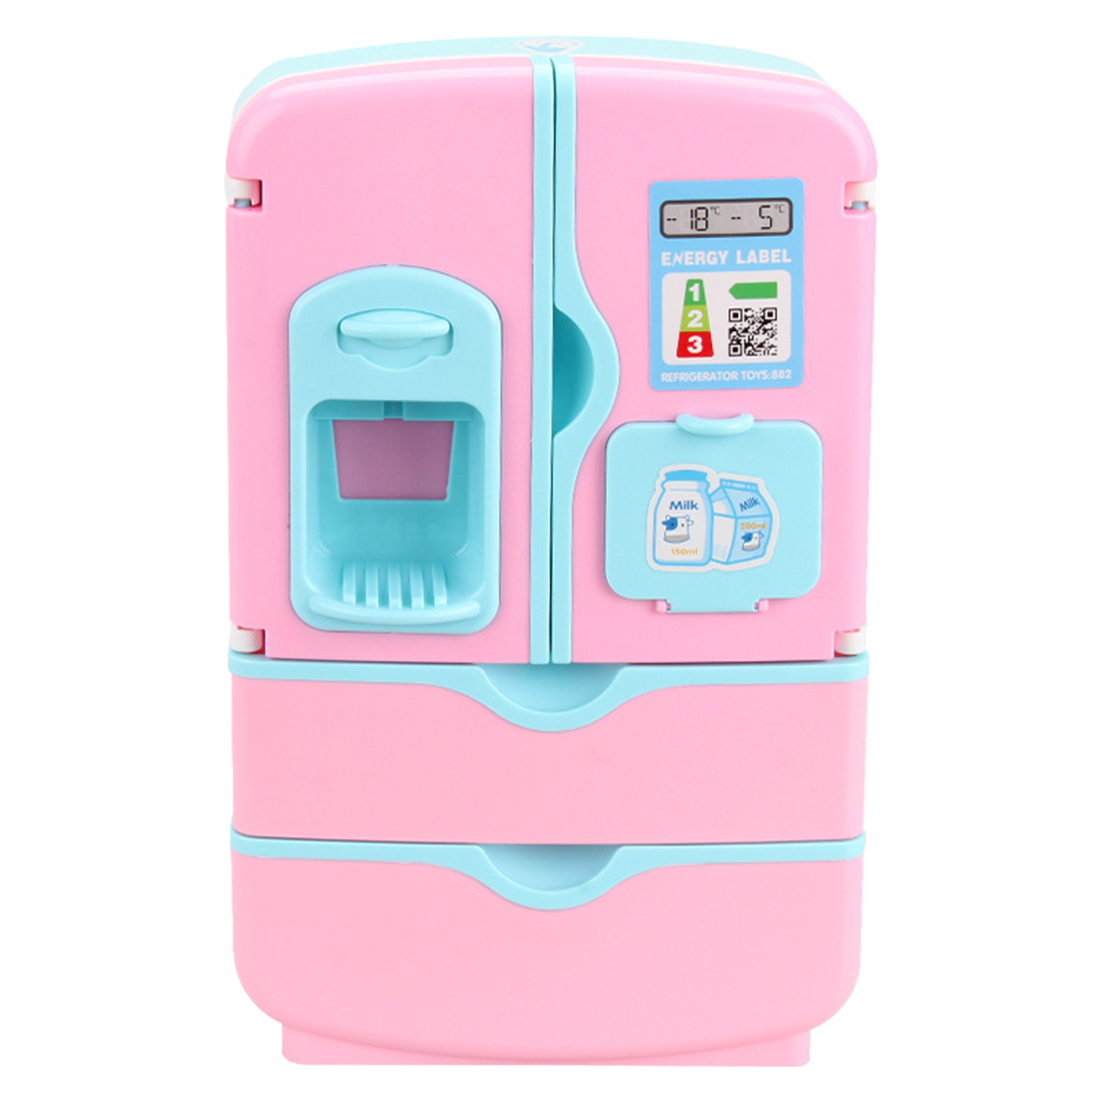 12Pcs/set Kids Double Door Role Play Fridge Toy Touch Sensitive Magic Refrigerator Educational Home Appliance Toy - Pink